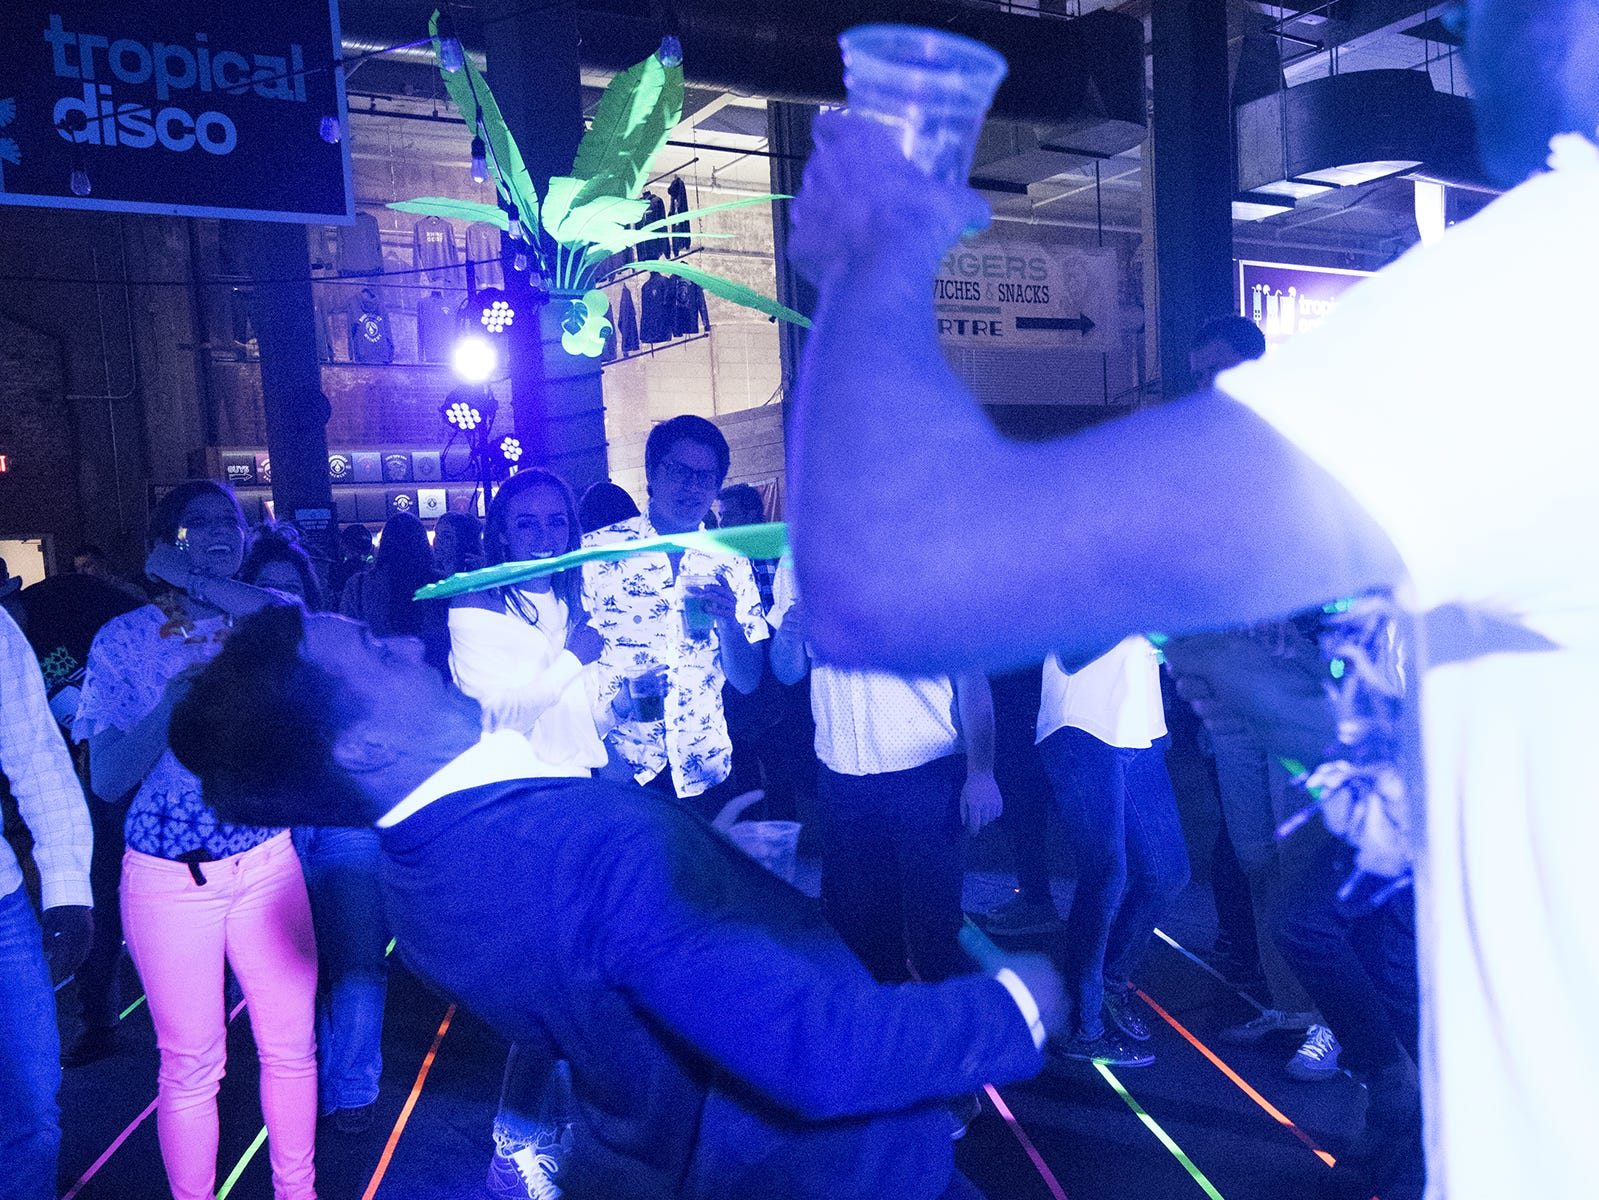 Guests play limbo on the dance floor during a tropical disco.